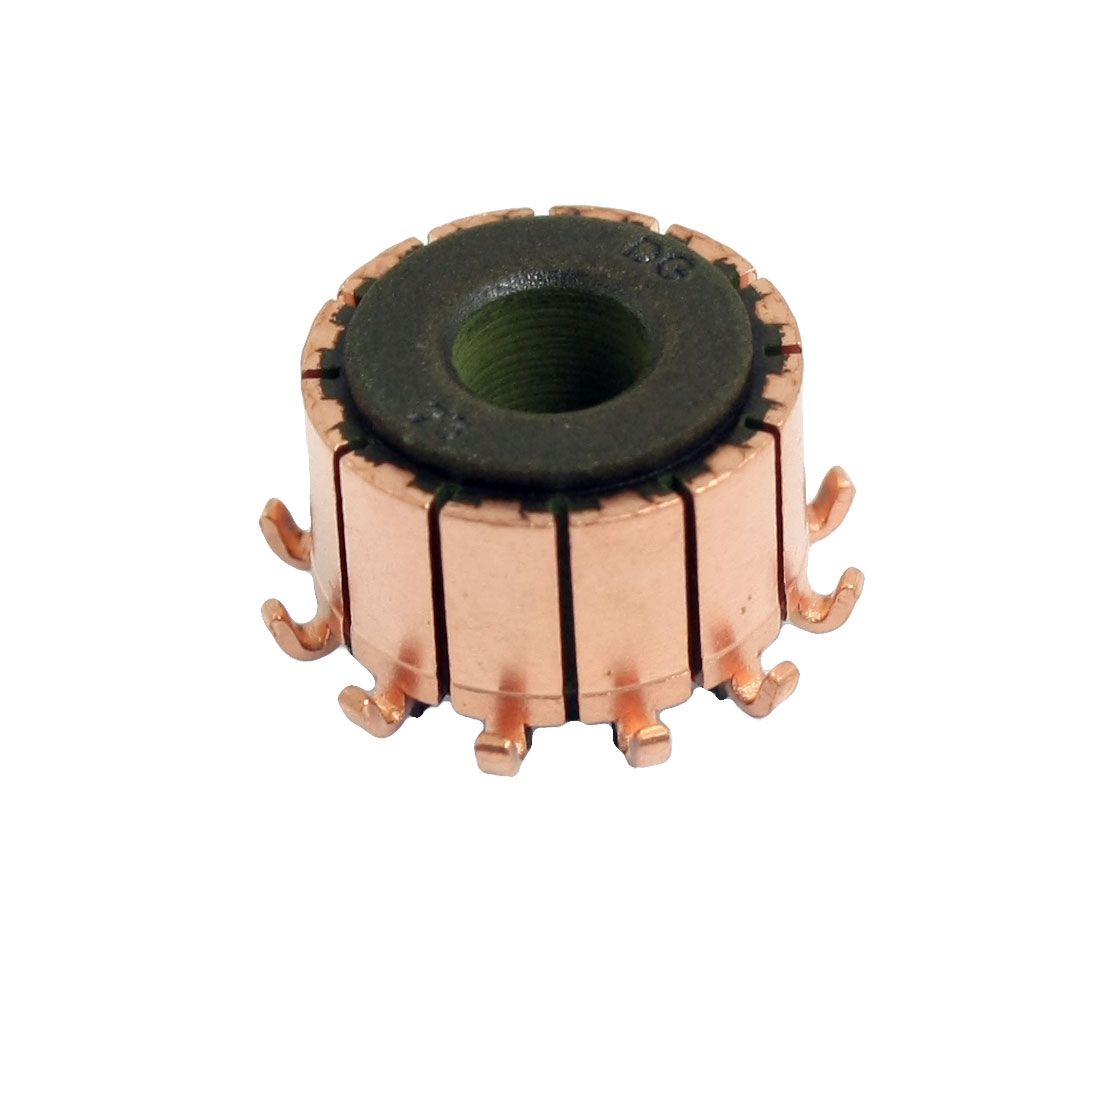 6.35mm Shaft Dimeter 16.5mm OD 12 Tooth Copper Shell Electric Motor Commutator